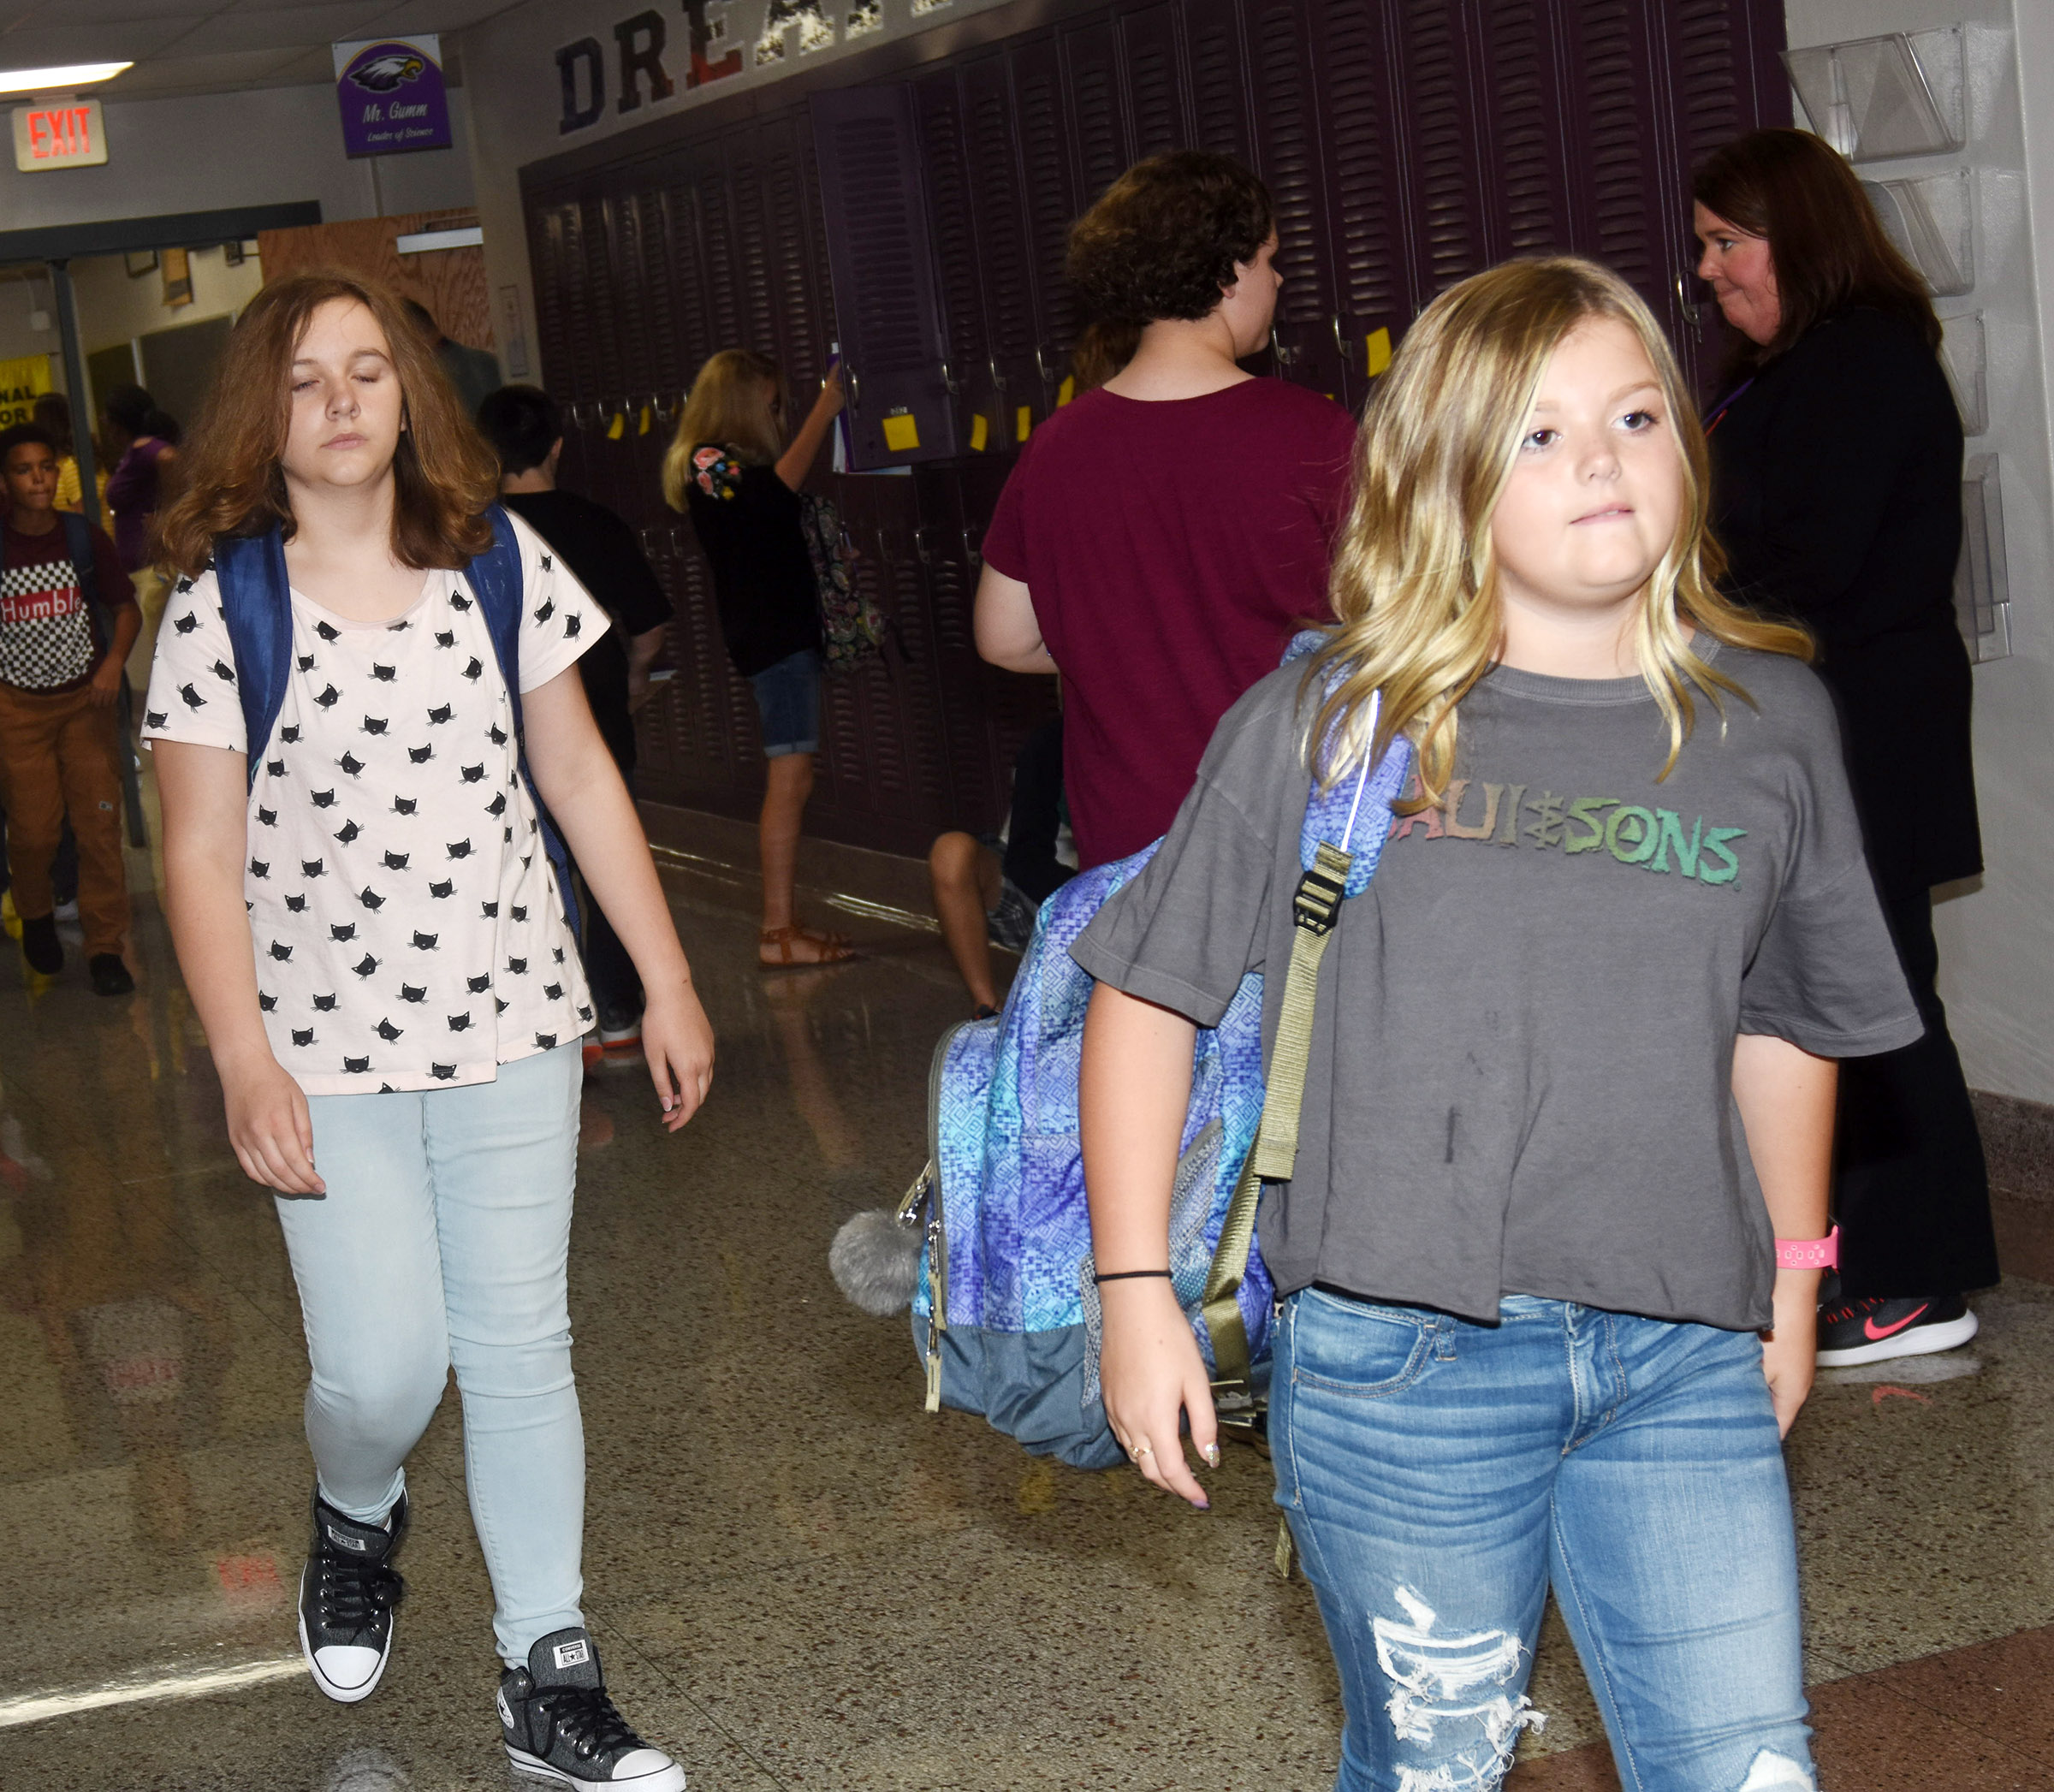 Campbellsville Middle School seventh-grader Ellington Gowin walks down the hallway as she and her classmates prepare to go home.